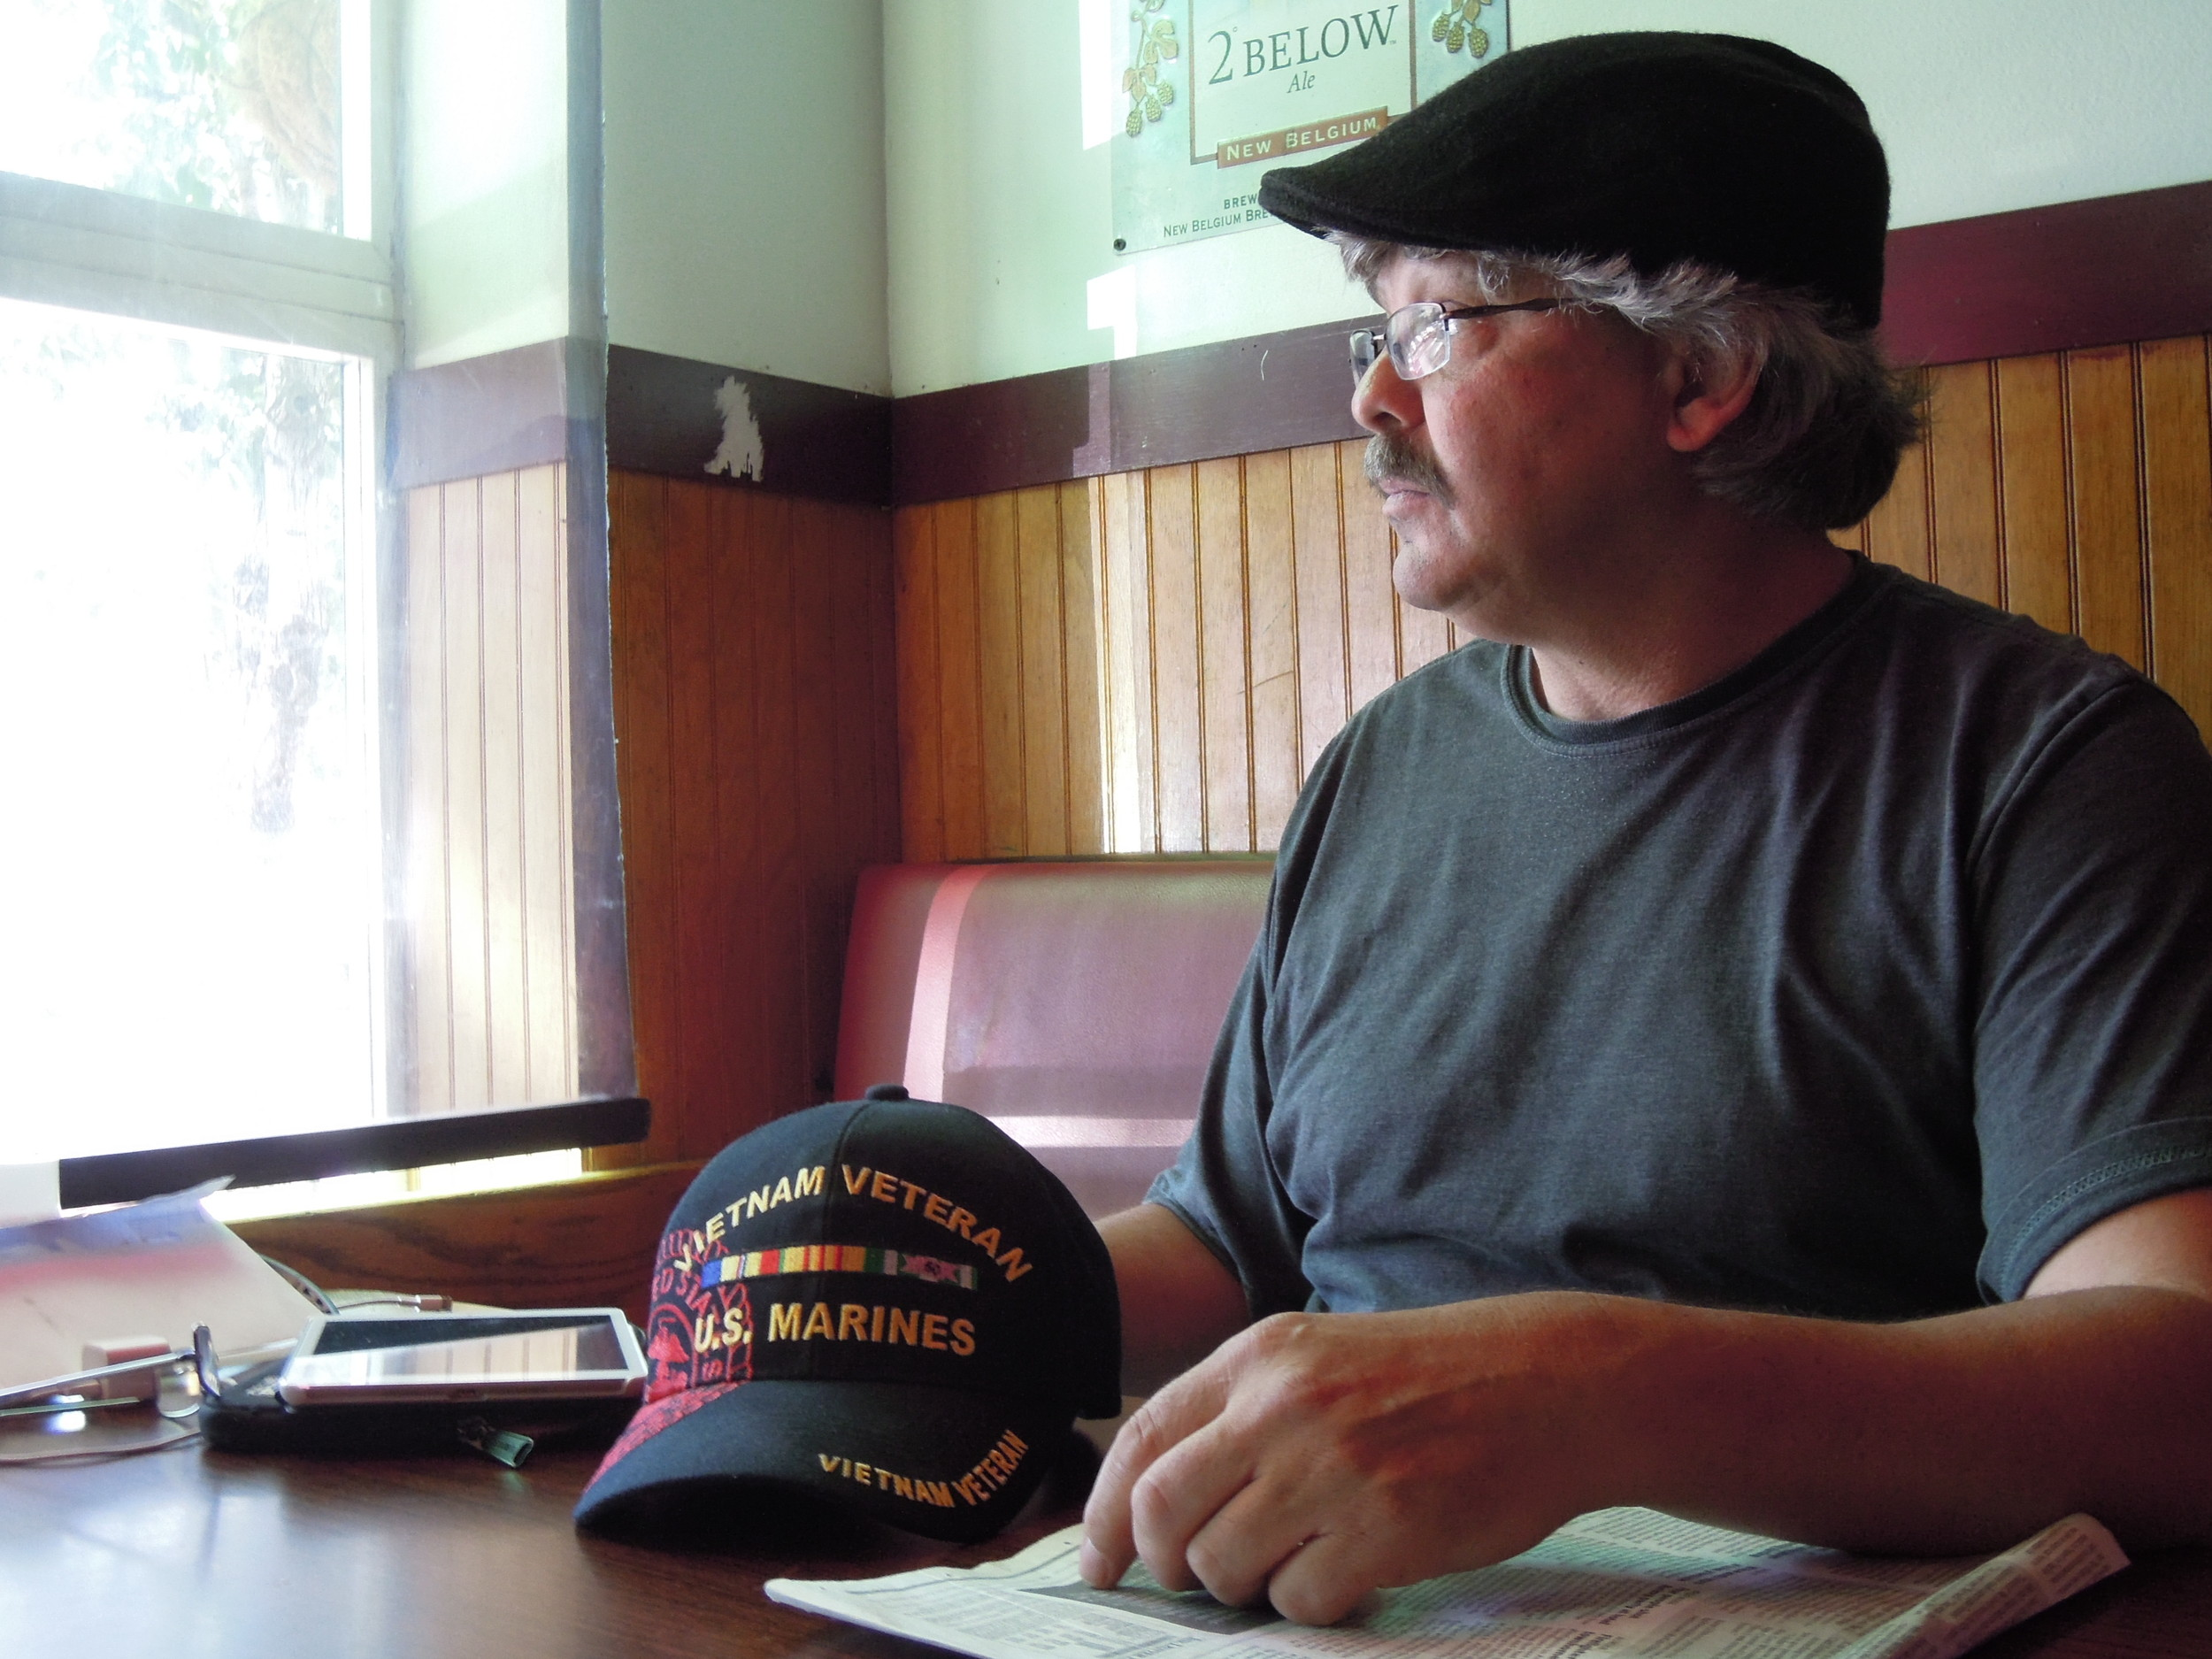 Michael O'Brien thinks about his late friend George Claggett as he sits in a booth inside a bar that Claggett often frequented, Denver's Park Tavern and Restaurant, on June 13. On the table sits the cap that Claggett, a Vietnam veteran, often wore.